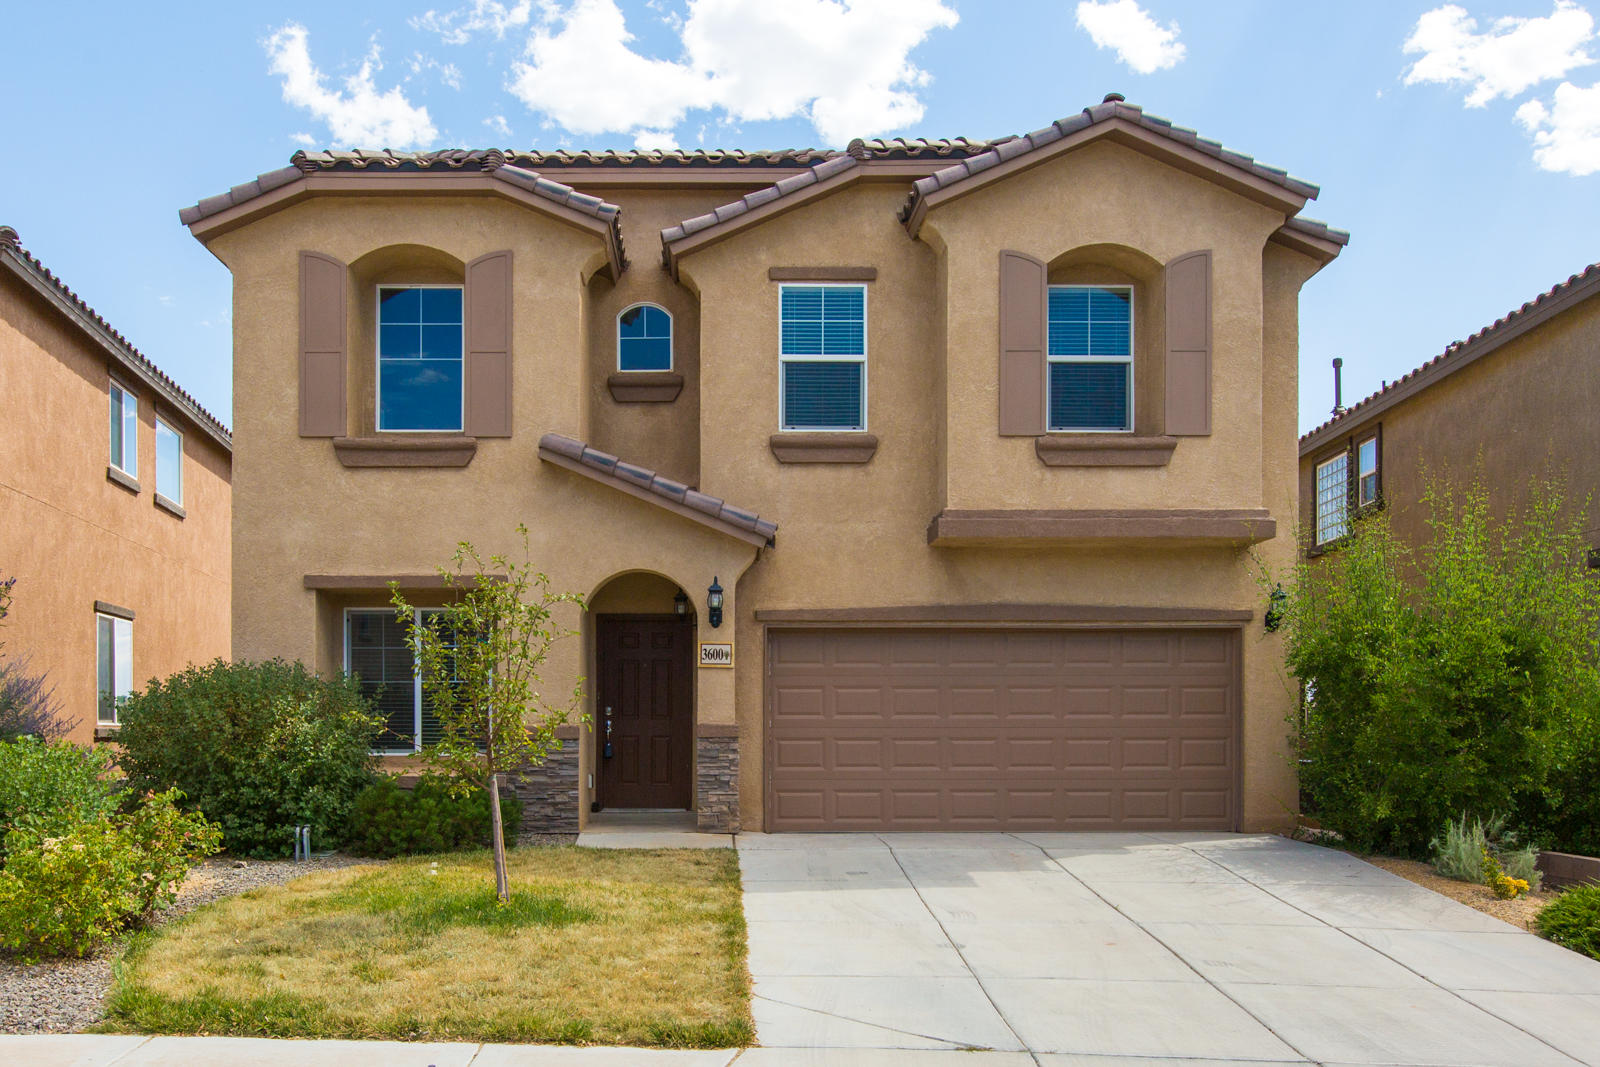 Beautiful movie-in-ready Pulte home located in the desirable Loma Colorado community! Home features 2,411sf with 4 bedrooms, 2.5 bathrooms, 2 living areas and an office! Chefs kitchen with upgraded cabinetry, granite countertops, stainless steel gas range, microwave, dishwasher, refrigerator, back splash, pantry and a large island with seating space. Separate family dining area!  Open main living area perfect when entertaining!  Office conveniently located on the first floor! Upstairs find the spacious master suite with private spa-like bath. Bath hosts dual sinks, a large vanity, relaxing bath, walk-in shower with glass enclosure and his/hers walk-in closets. Great backyard fully landscaped and walled backing to open space! Walking trails in the community!